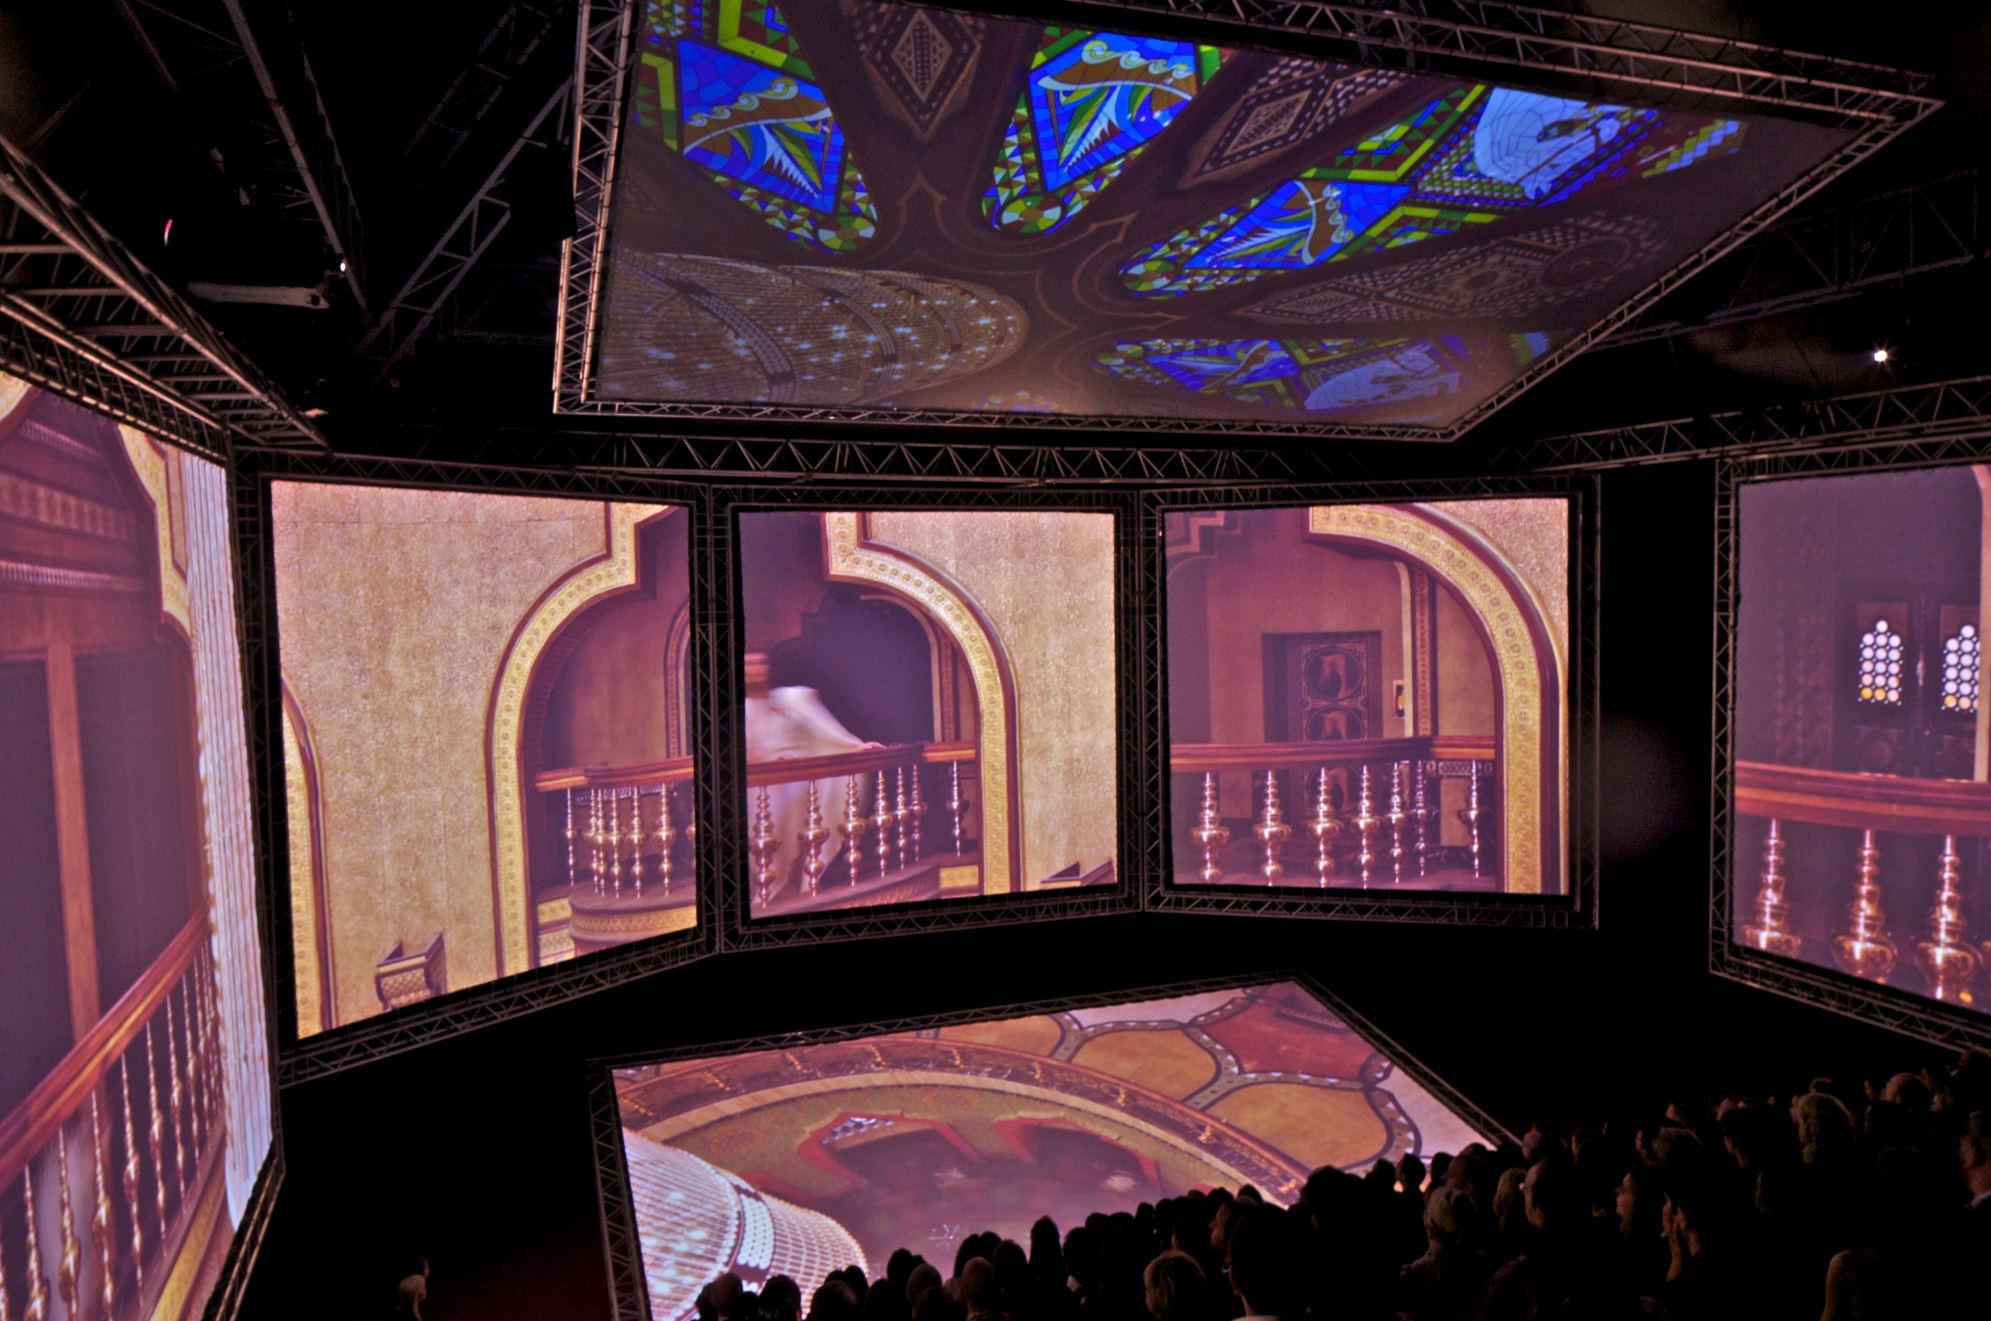 The pavilion would be used to screen of West's debut short film Cruel Summer. Image courtesy of OMA